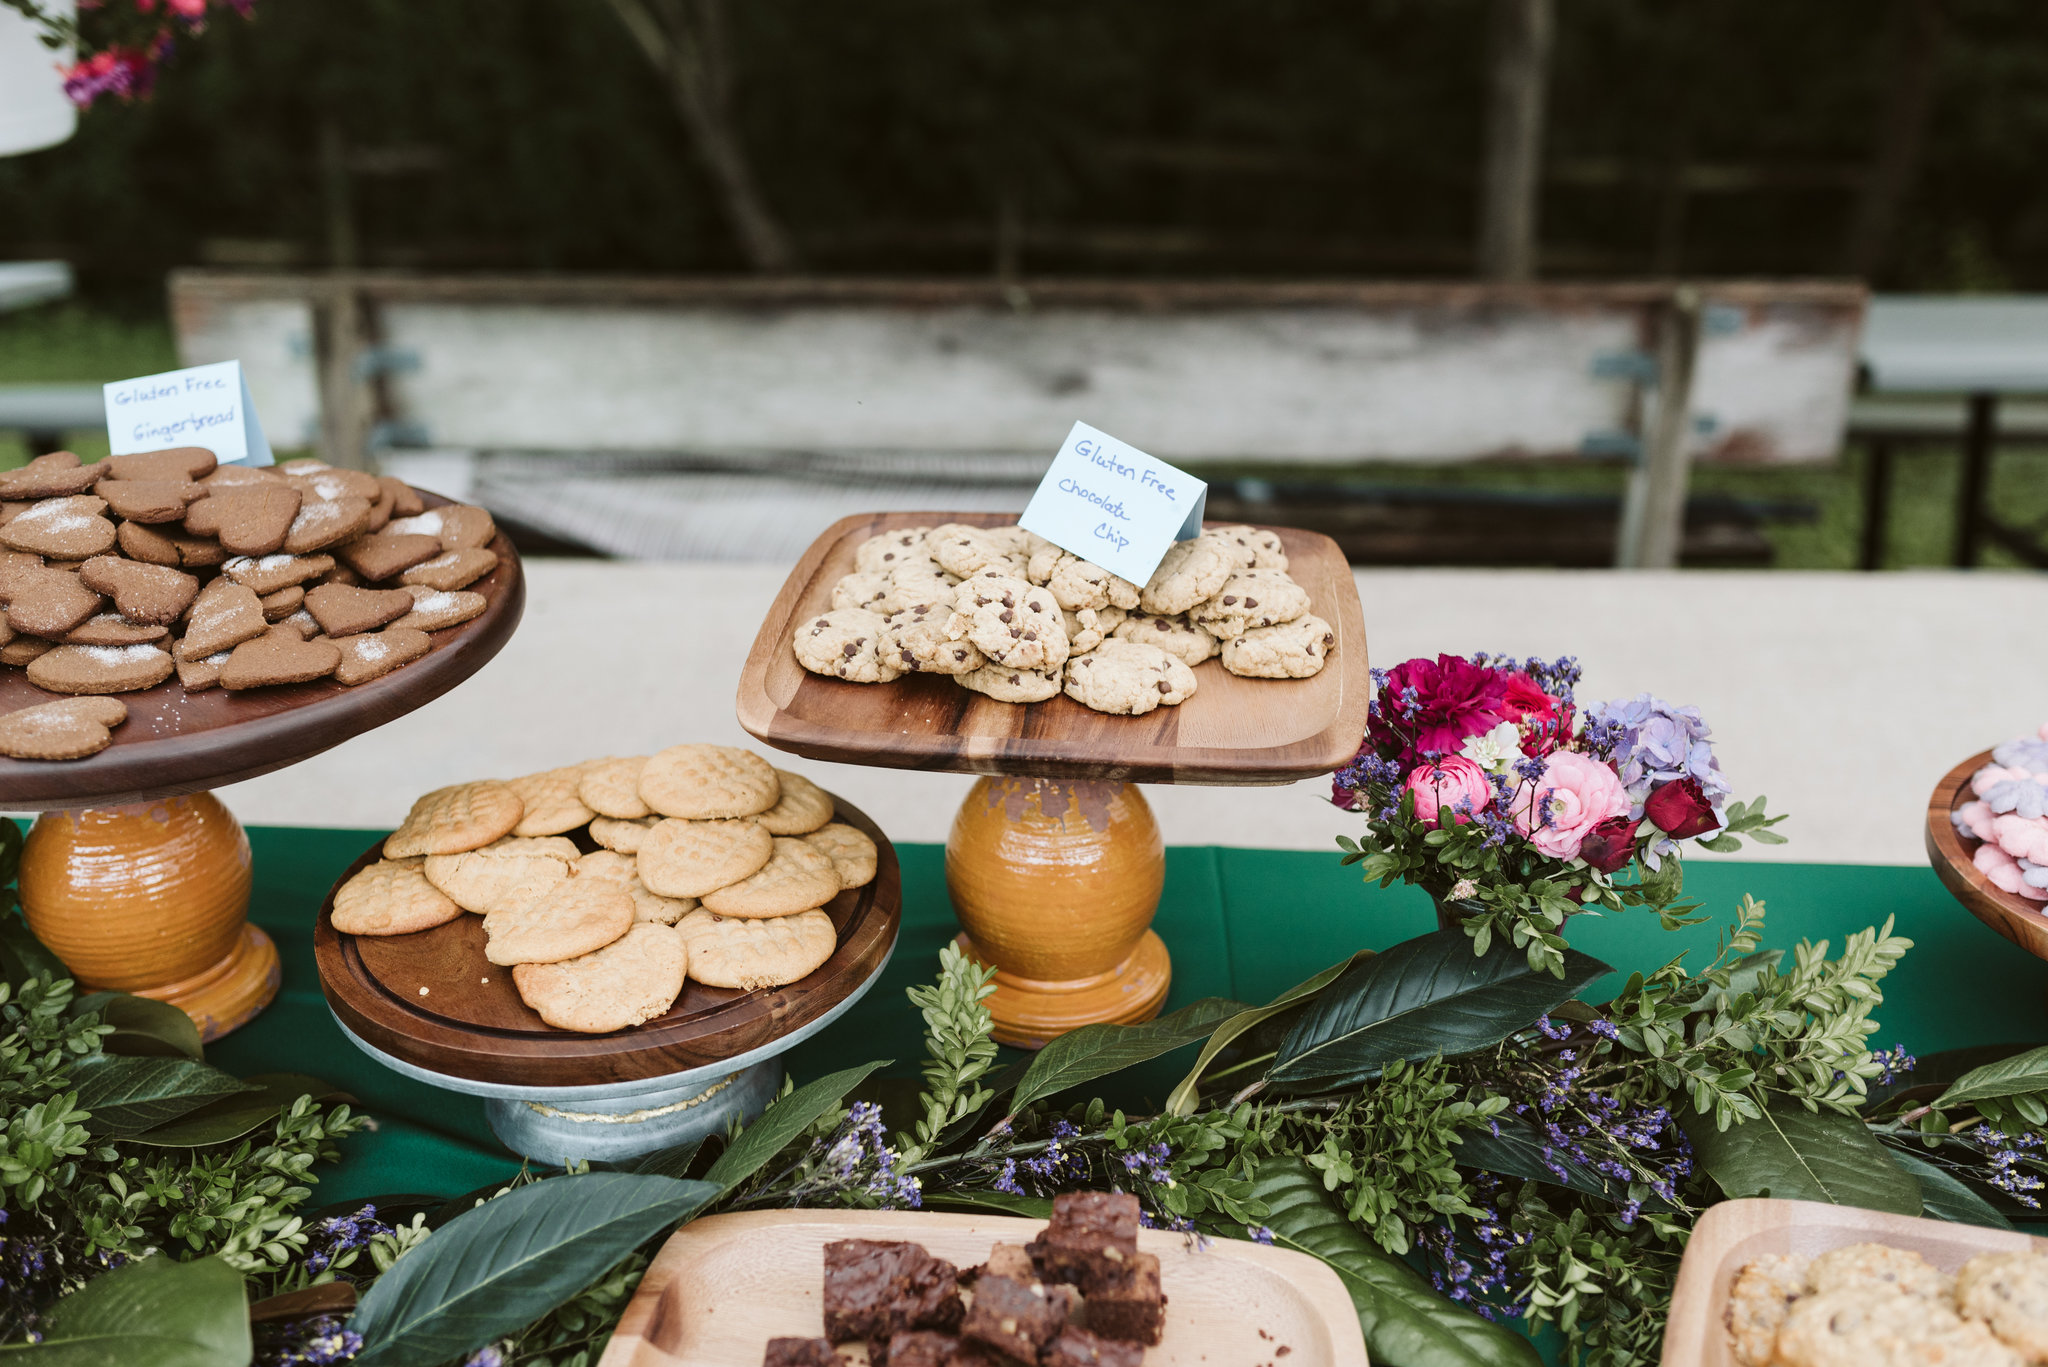 Annapolis, Quaker Wedding, Maryland Wedding Photographer, Intimate, Small Wedding, Vintage, DIY, Cookie Table, Gluten Free Cookies, Dessert Table